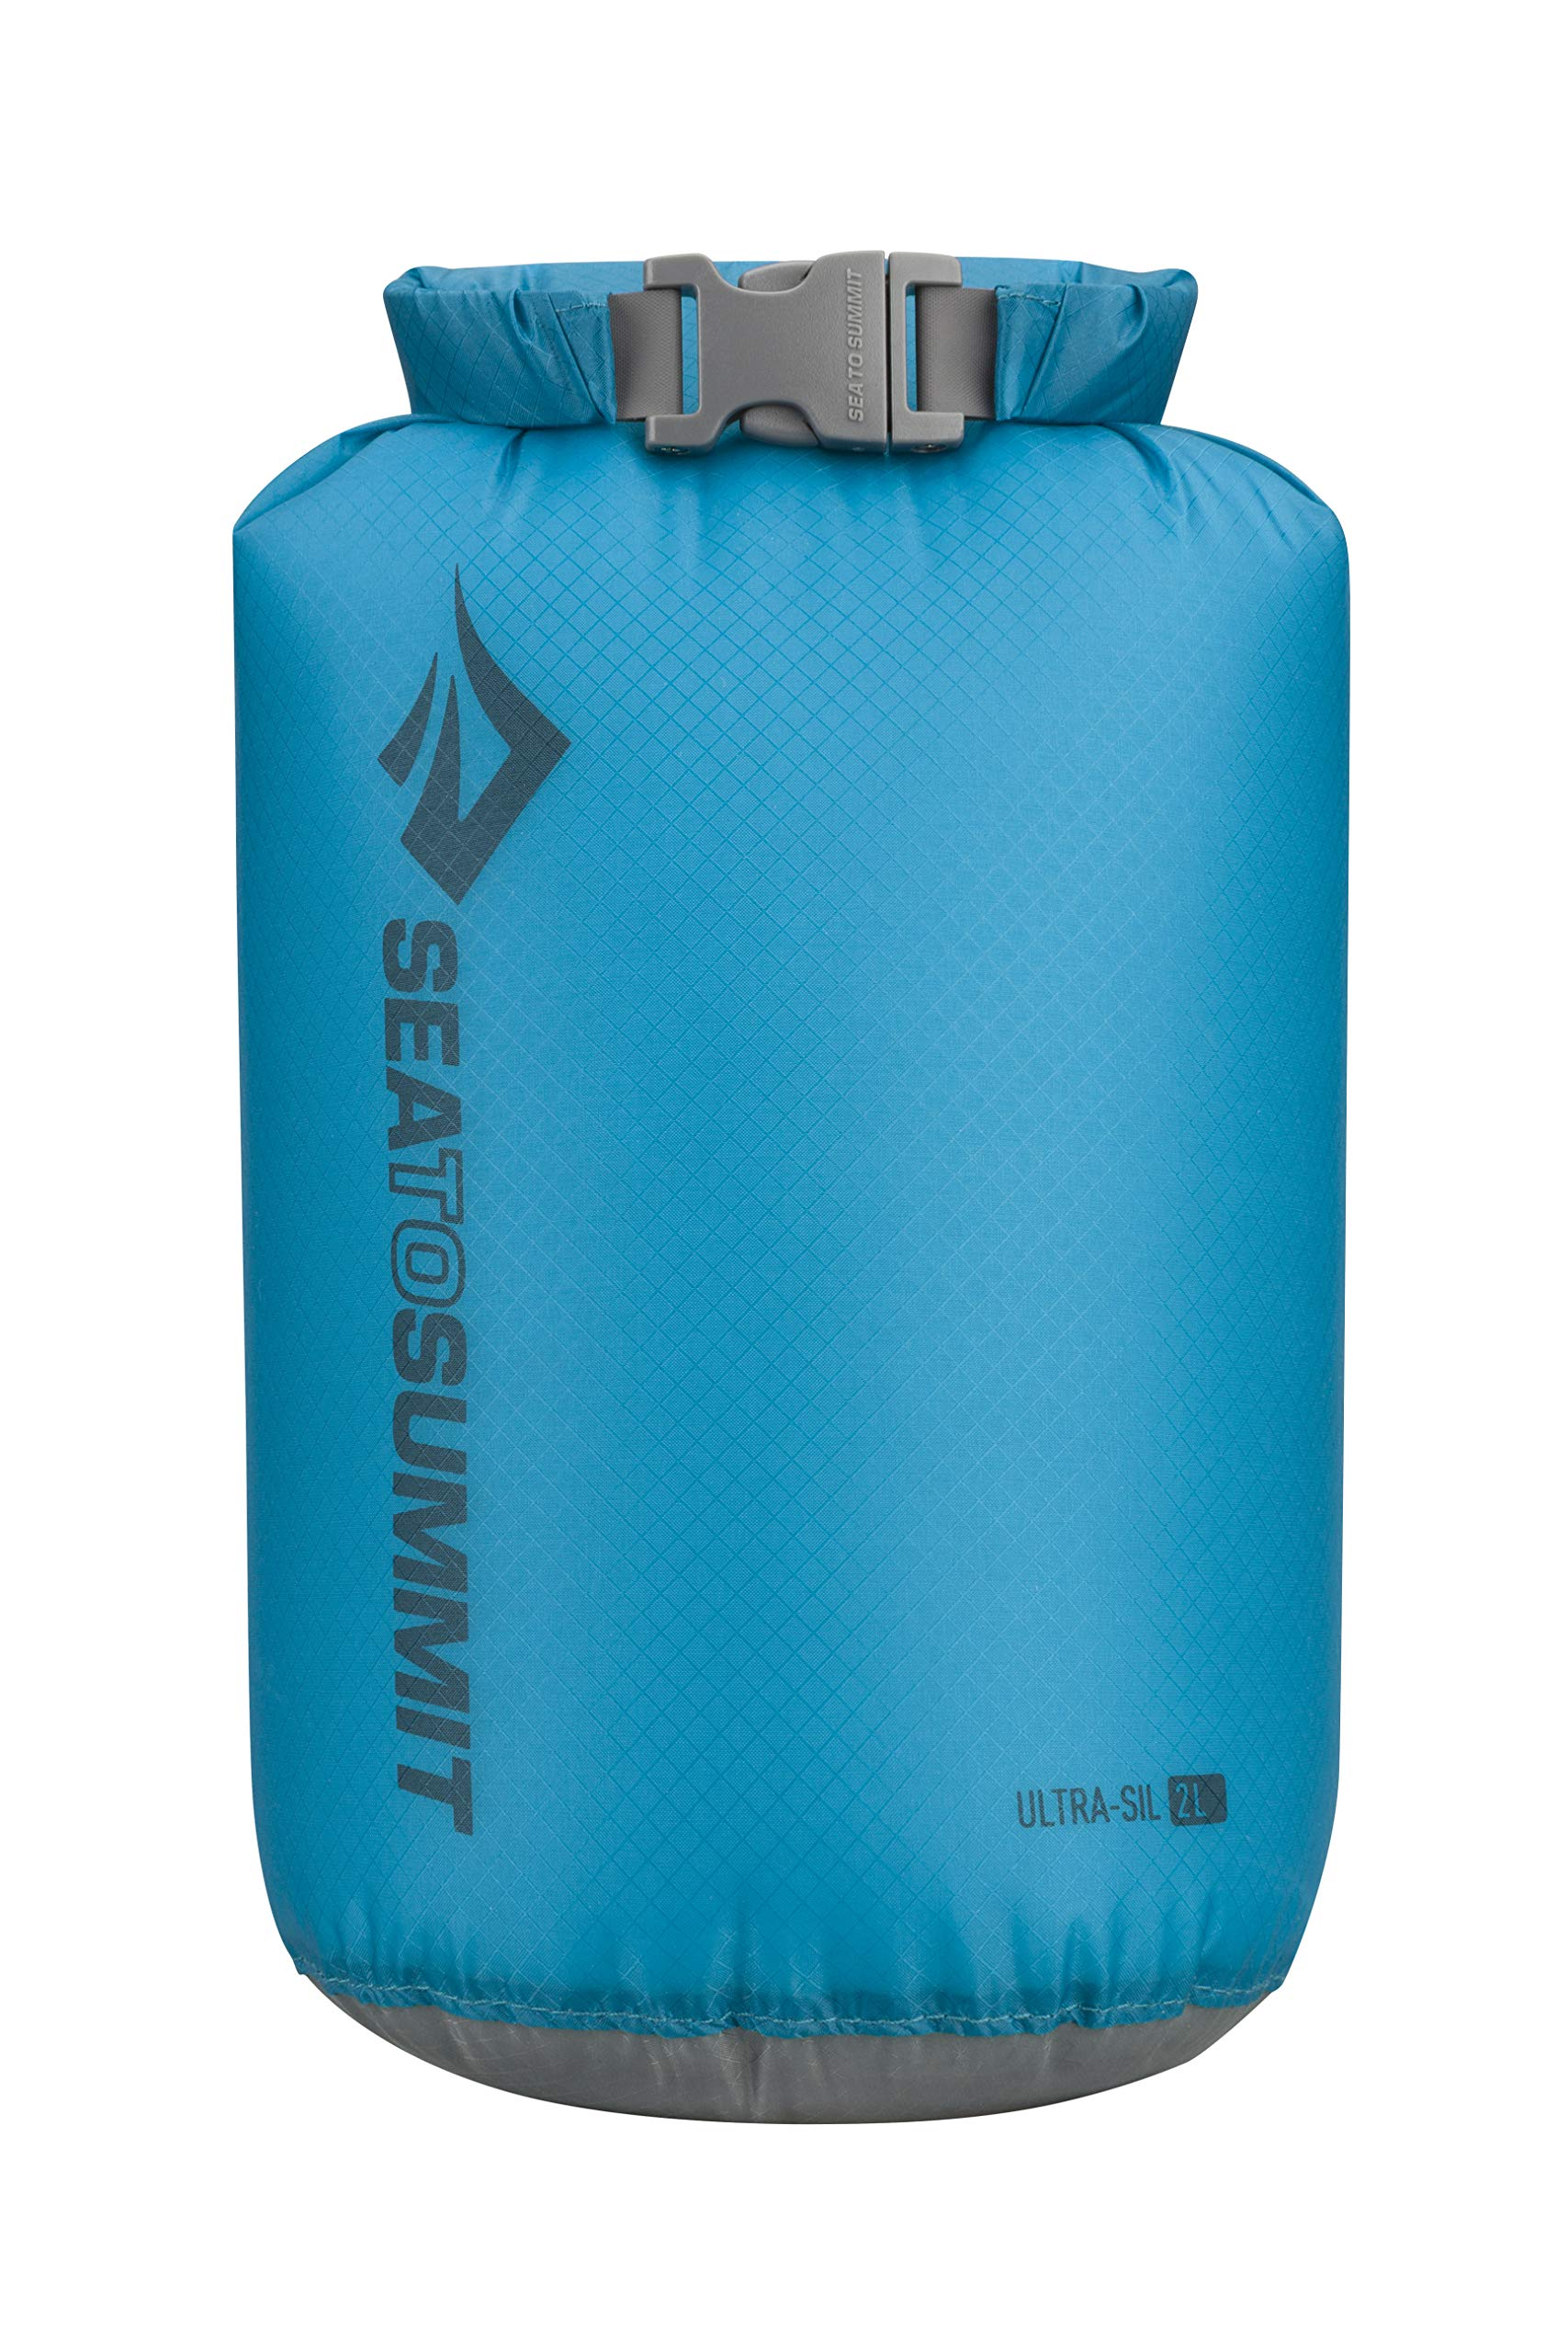 Sea to Summit Ultra-Sil Dry Sack, Pacific Blue, 2 Liter by Sea to Summit